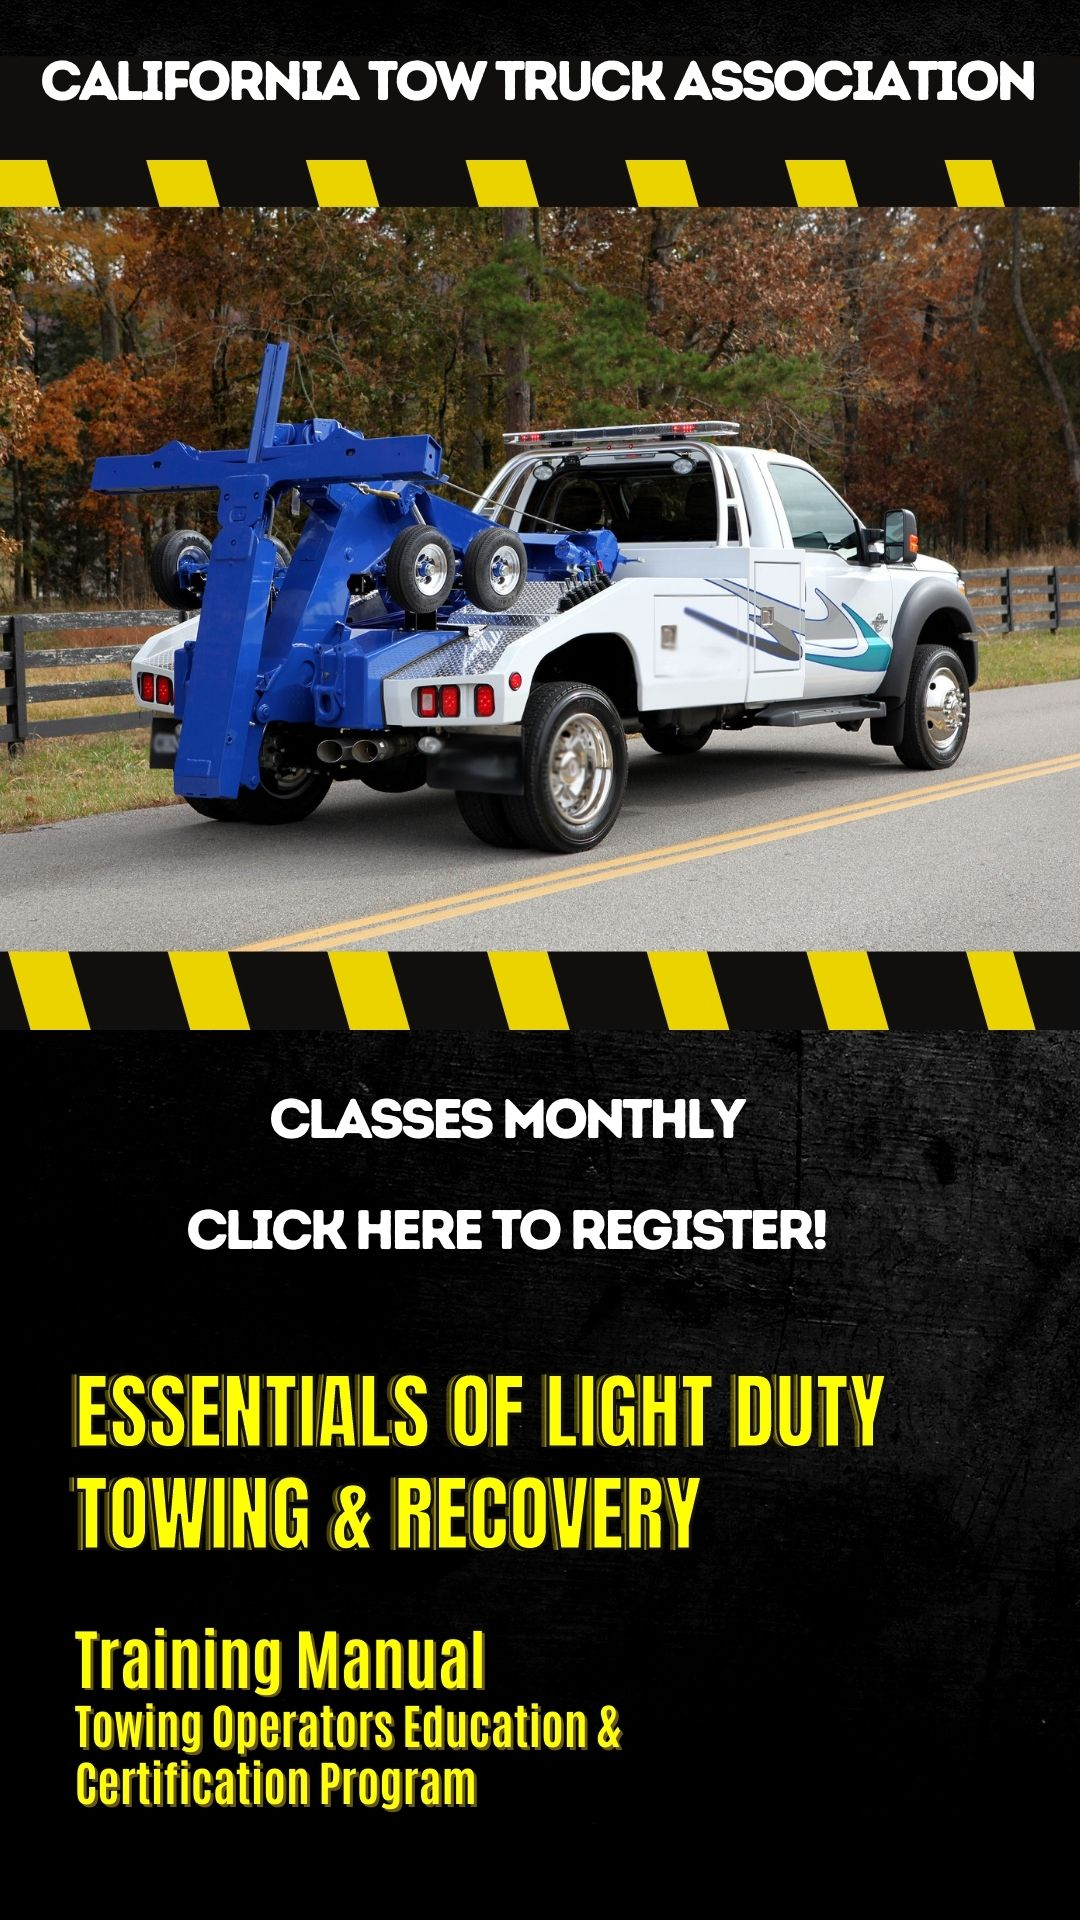 Click to register for Light Duty Certification